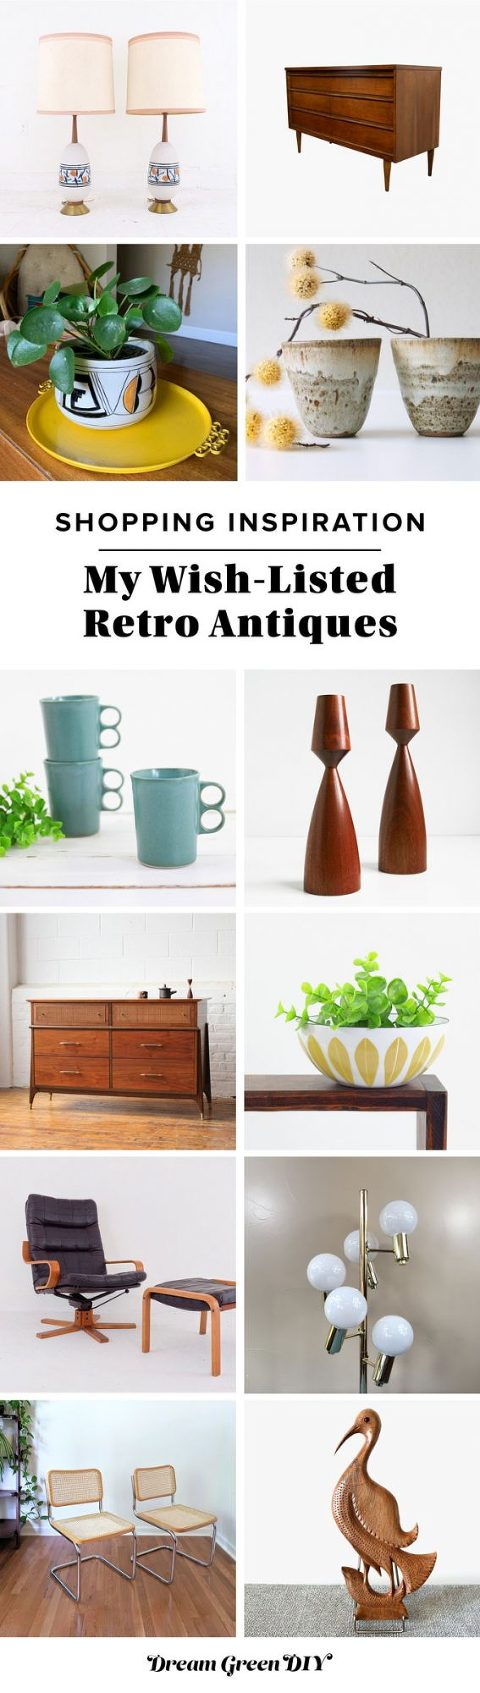 My Wish-Listed Mid-Century Antiques